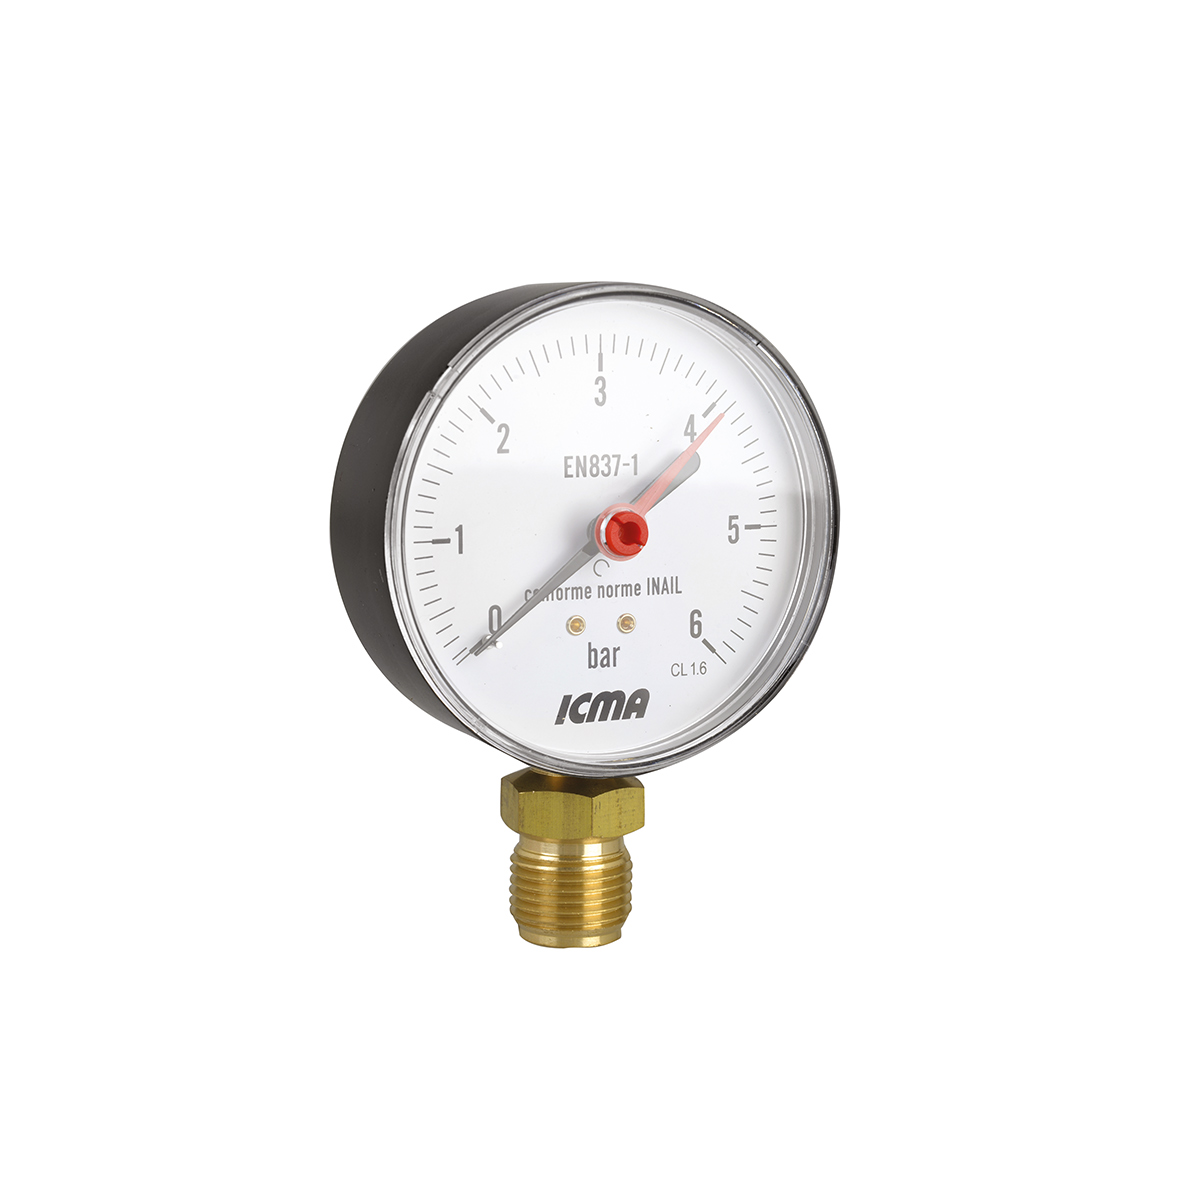 Radial connection gauge